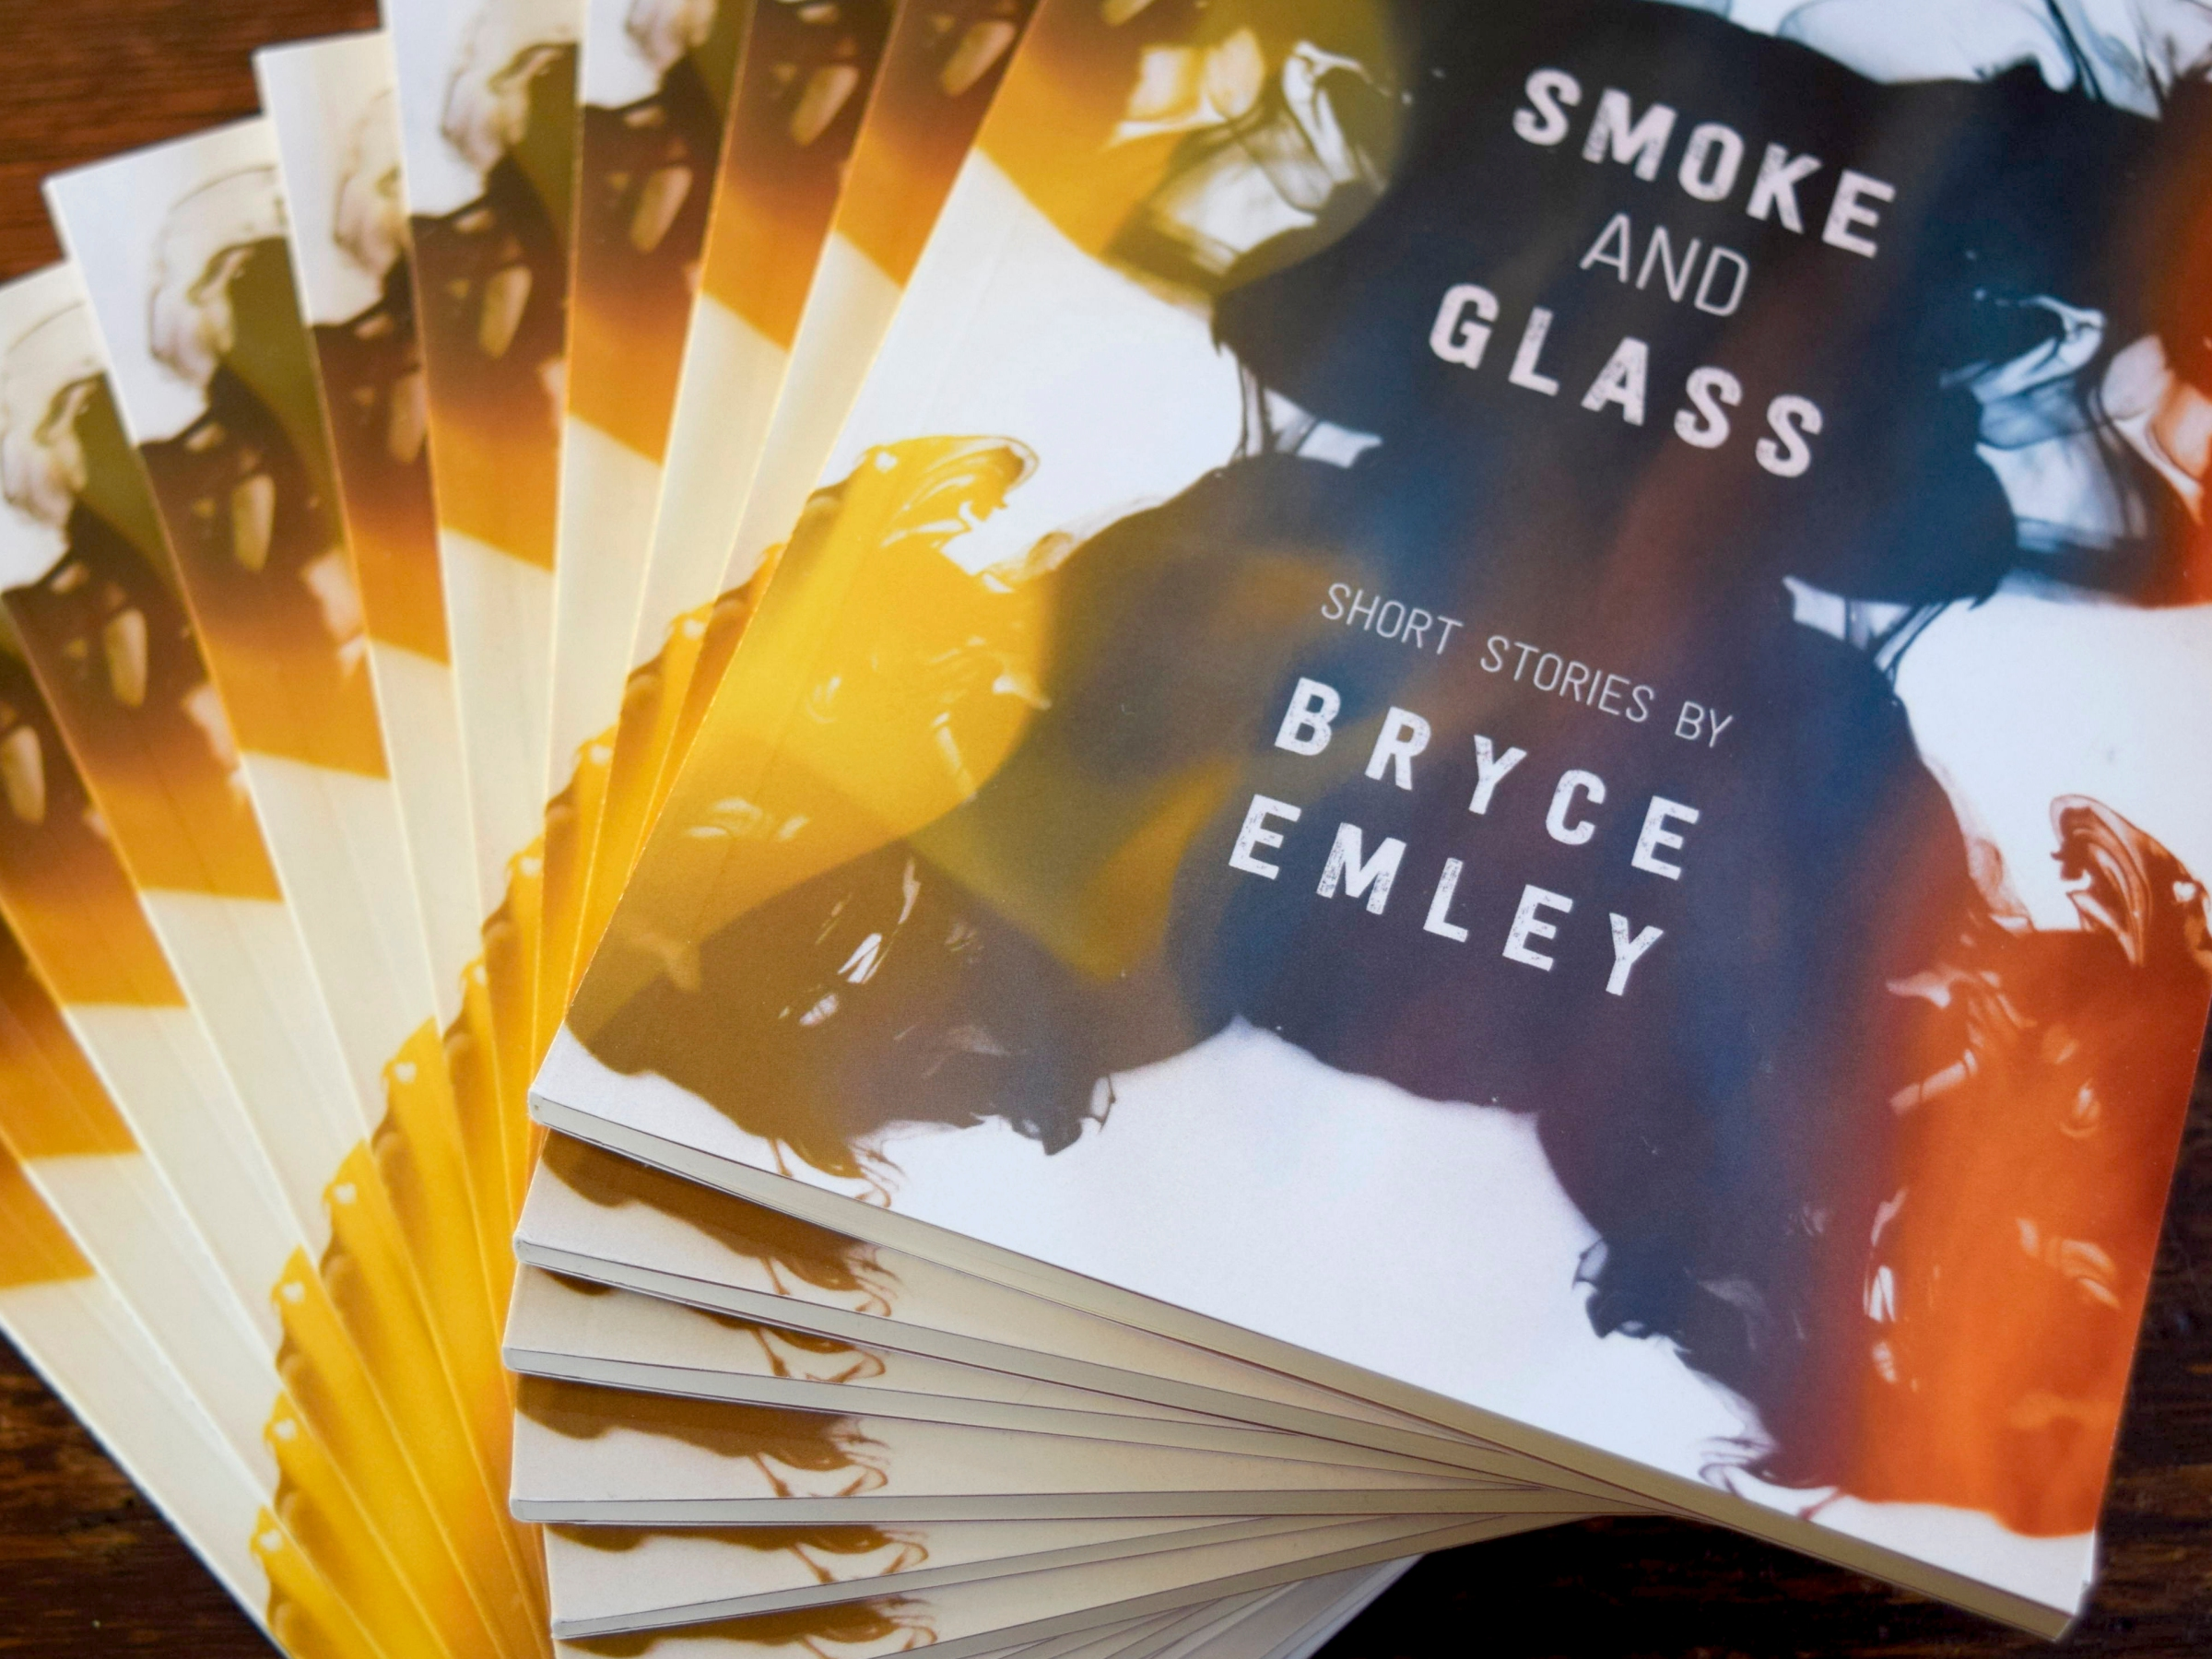 swirled stack of Smoke and Glass copies